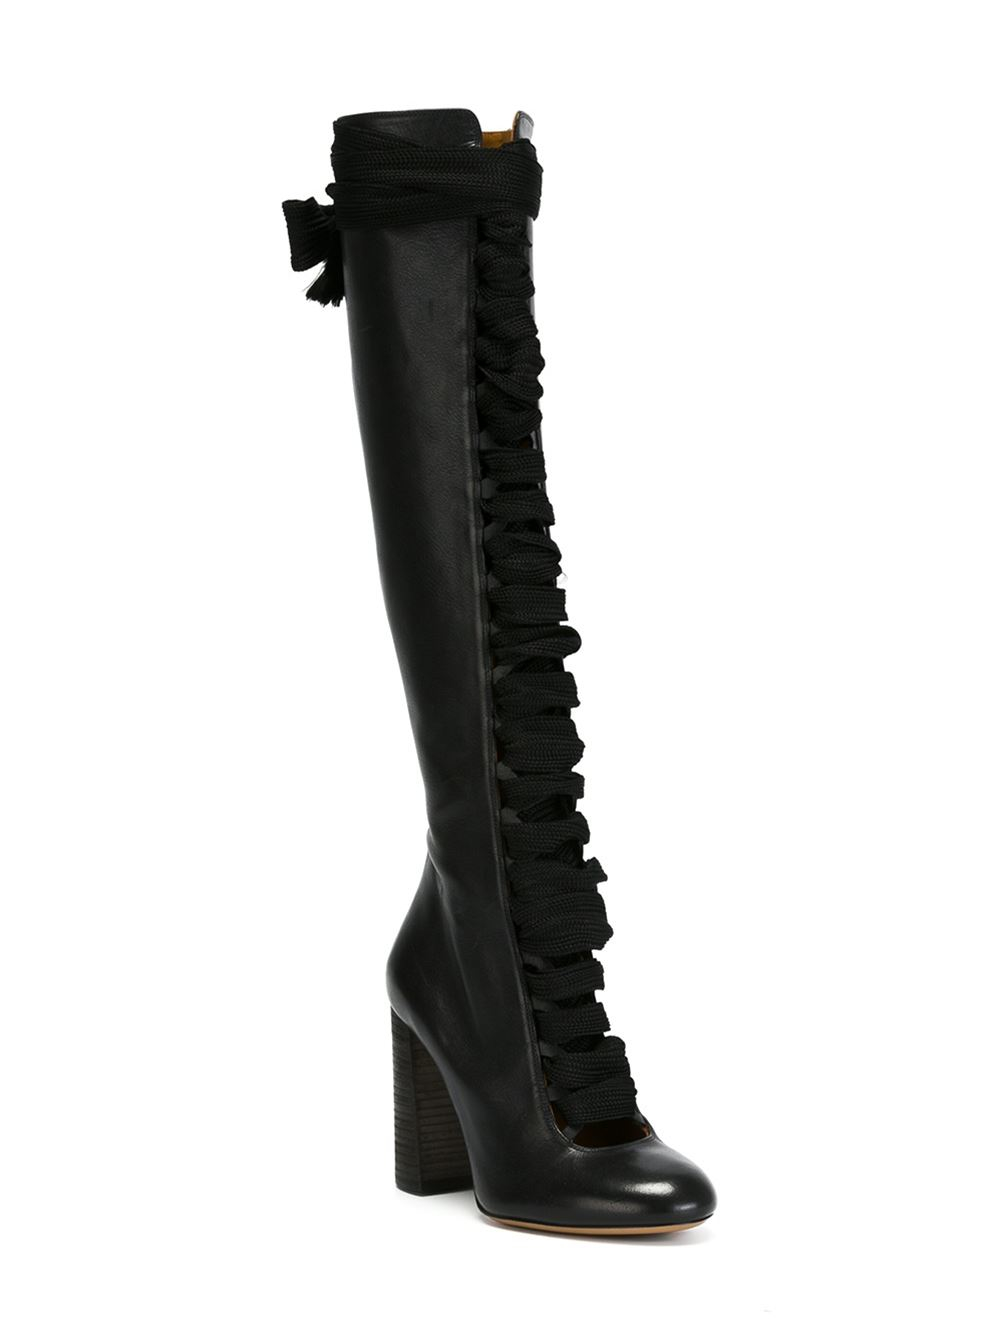 Chlo 233 Lace Up Knee High Boots In Black Lyst